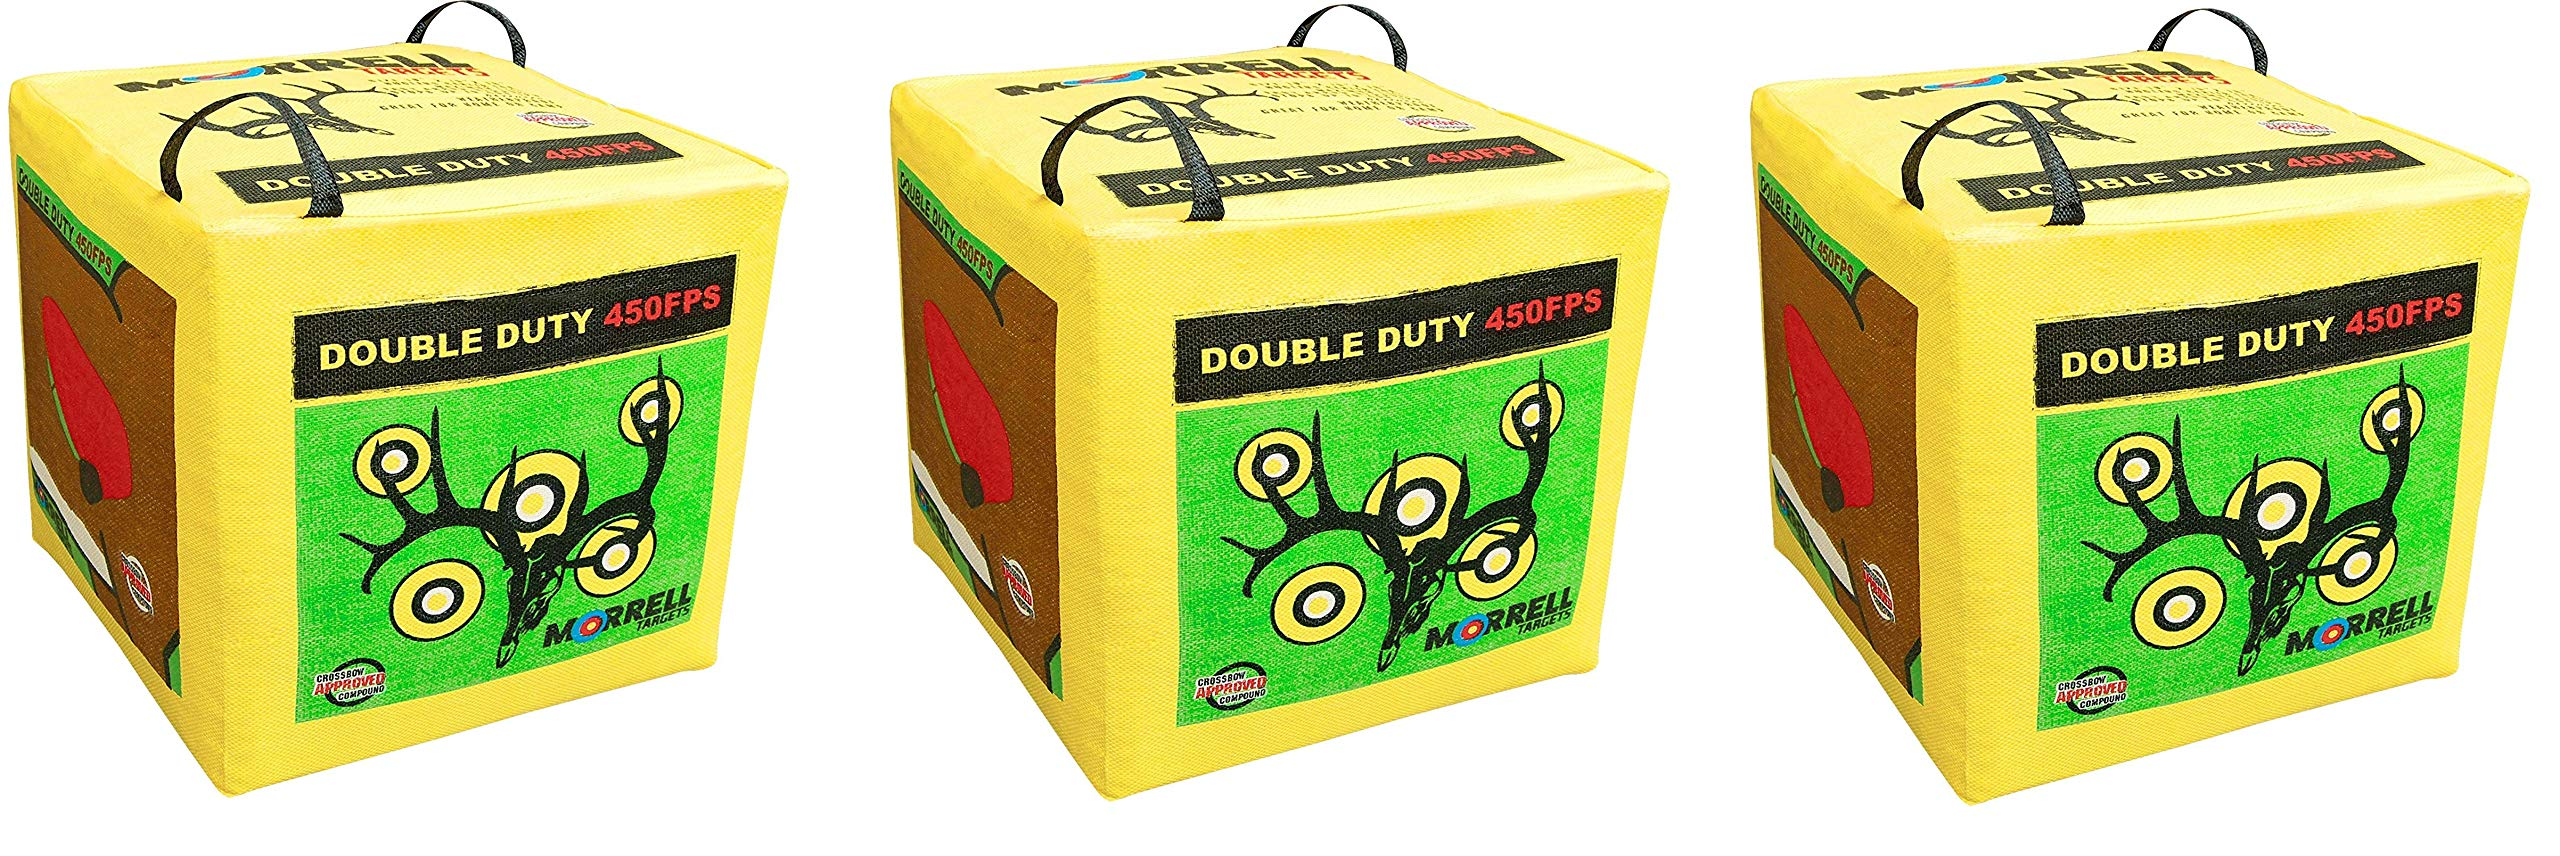 Morrell Double Duty 450FPS Field Point Bag Archery Target - for Crossbows, Compounds, Traditional Bows and Airbows (3-Pack) by Morrell